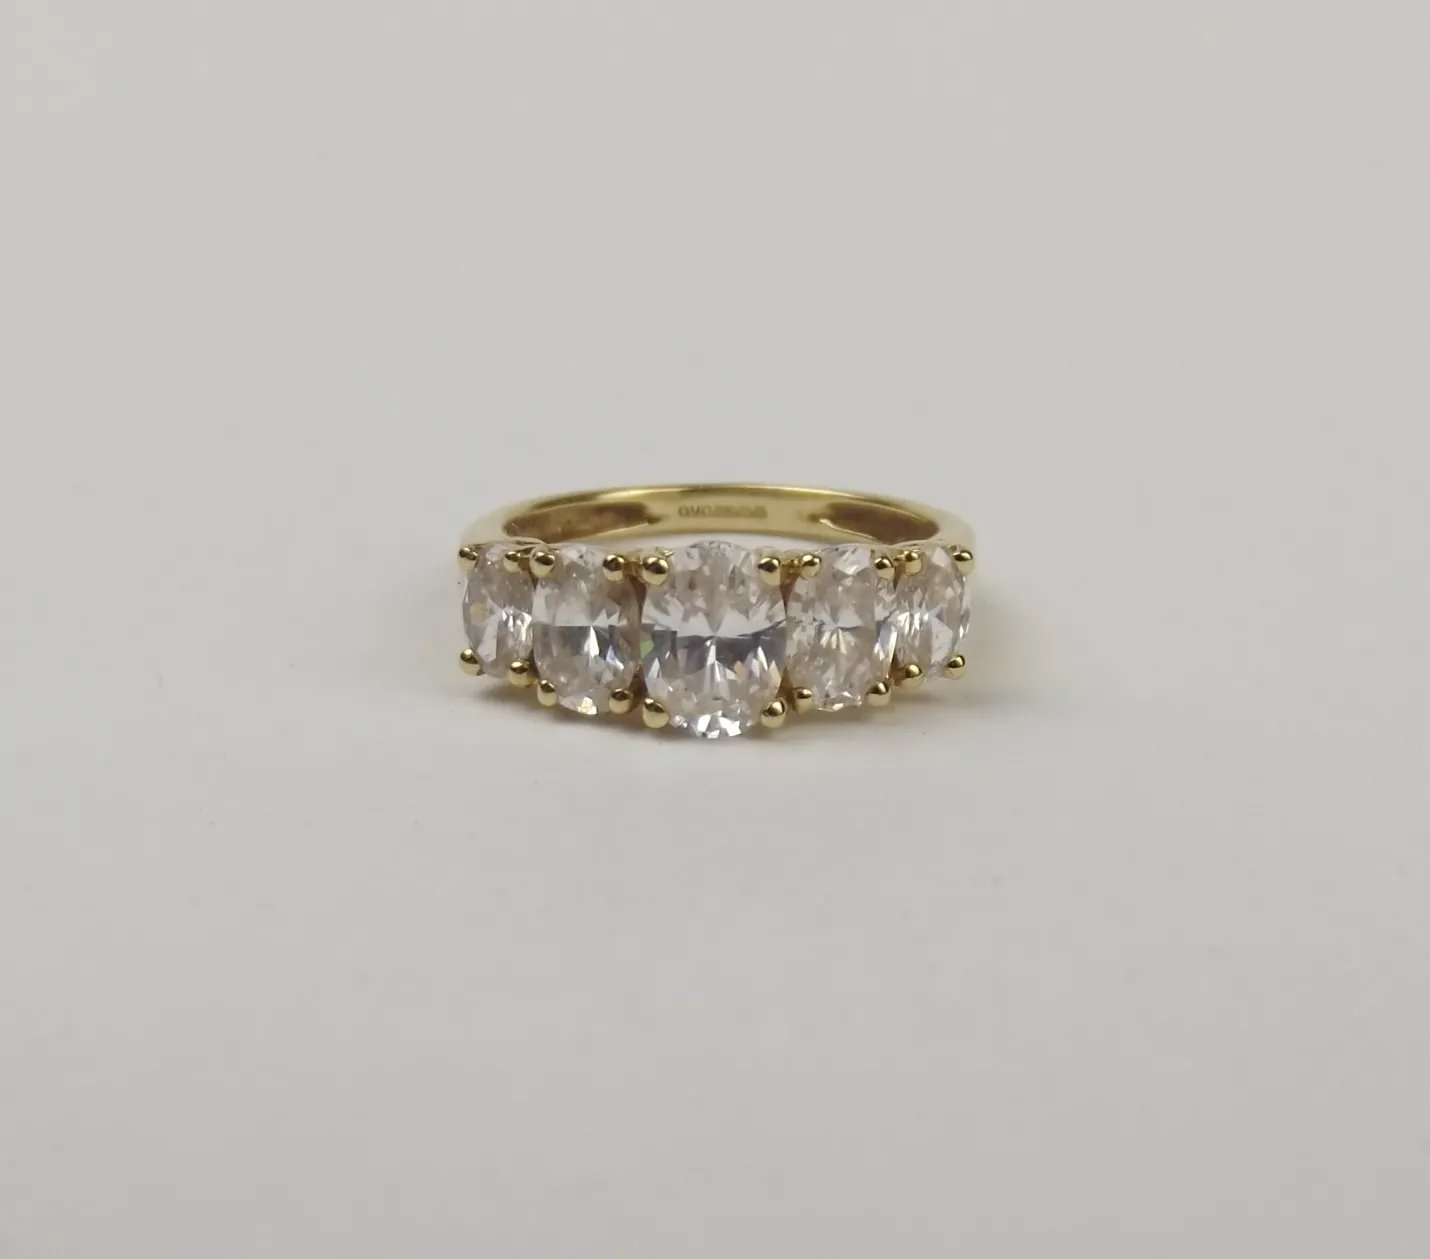 14ct Yellow Gold Cubic Zirconia Five Stone Ring UK Size M US 6